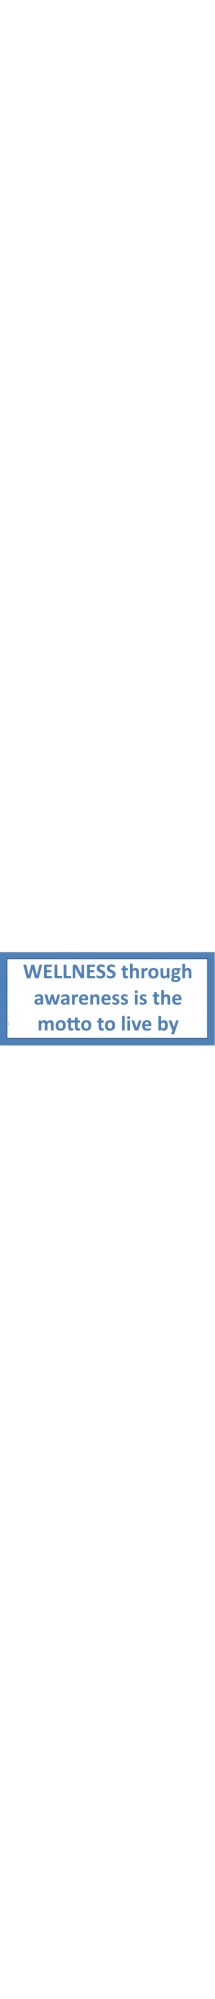 wellness through awareness